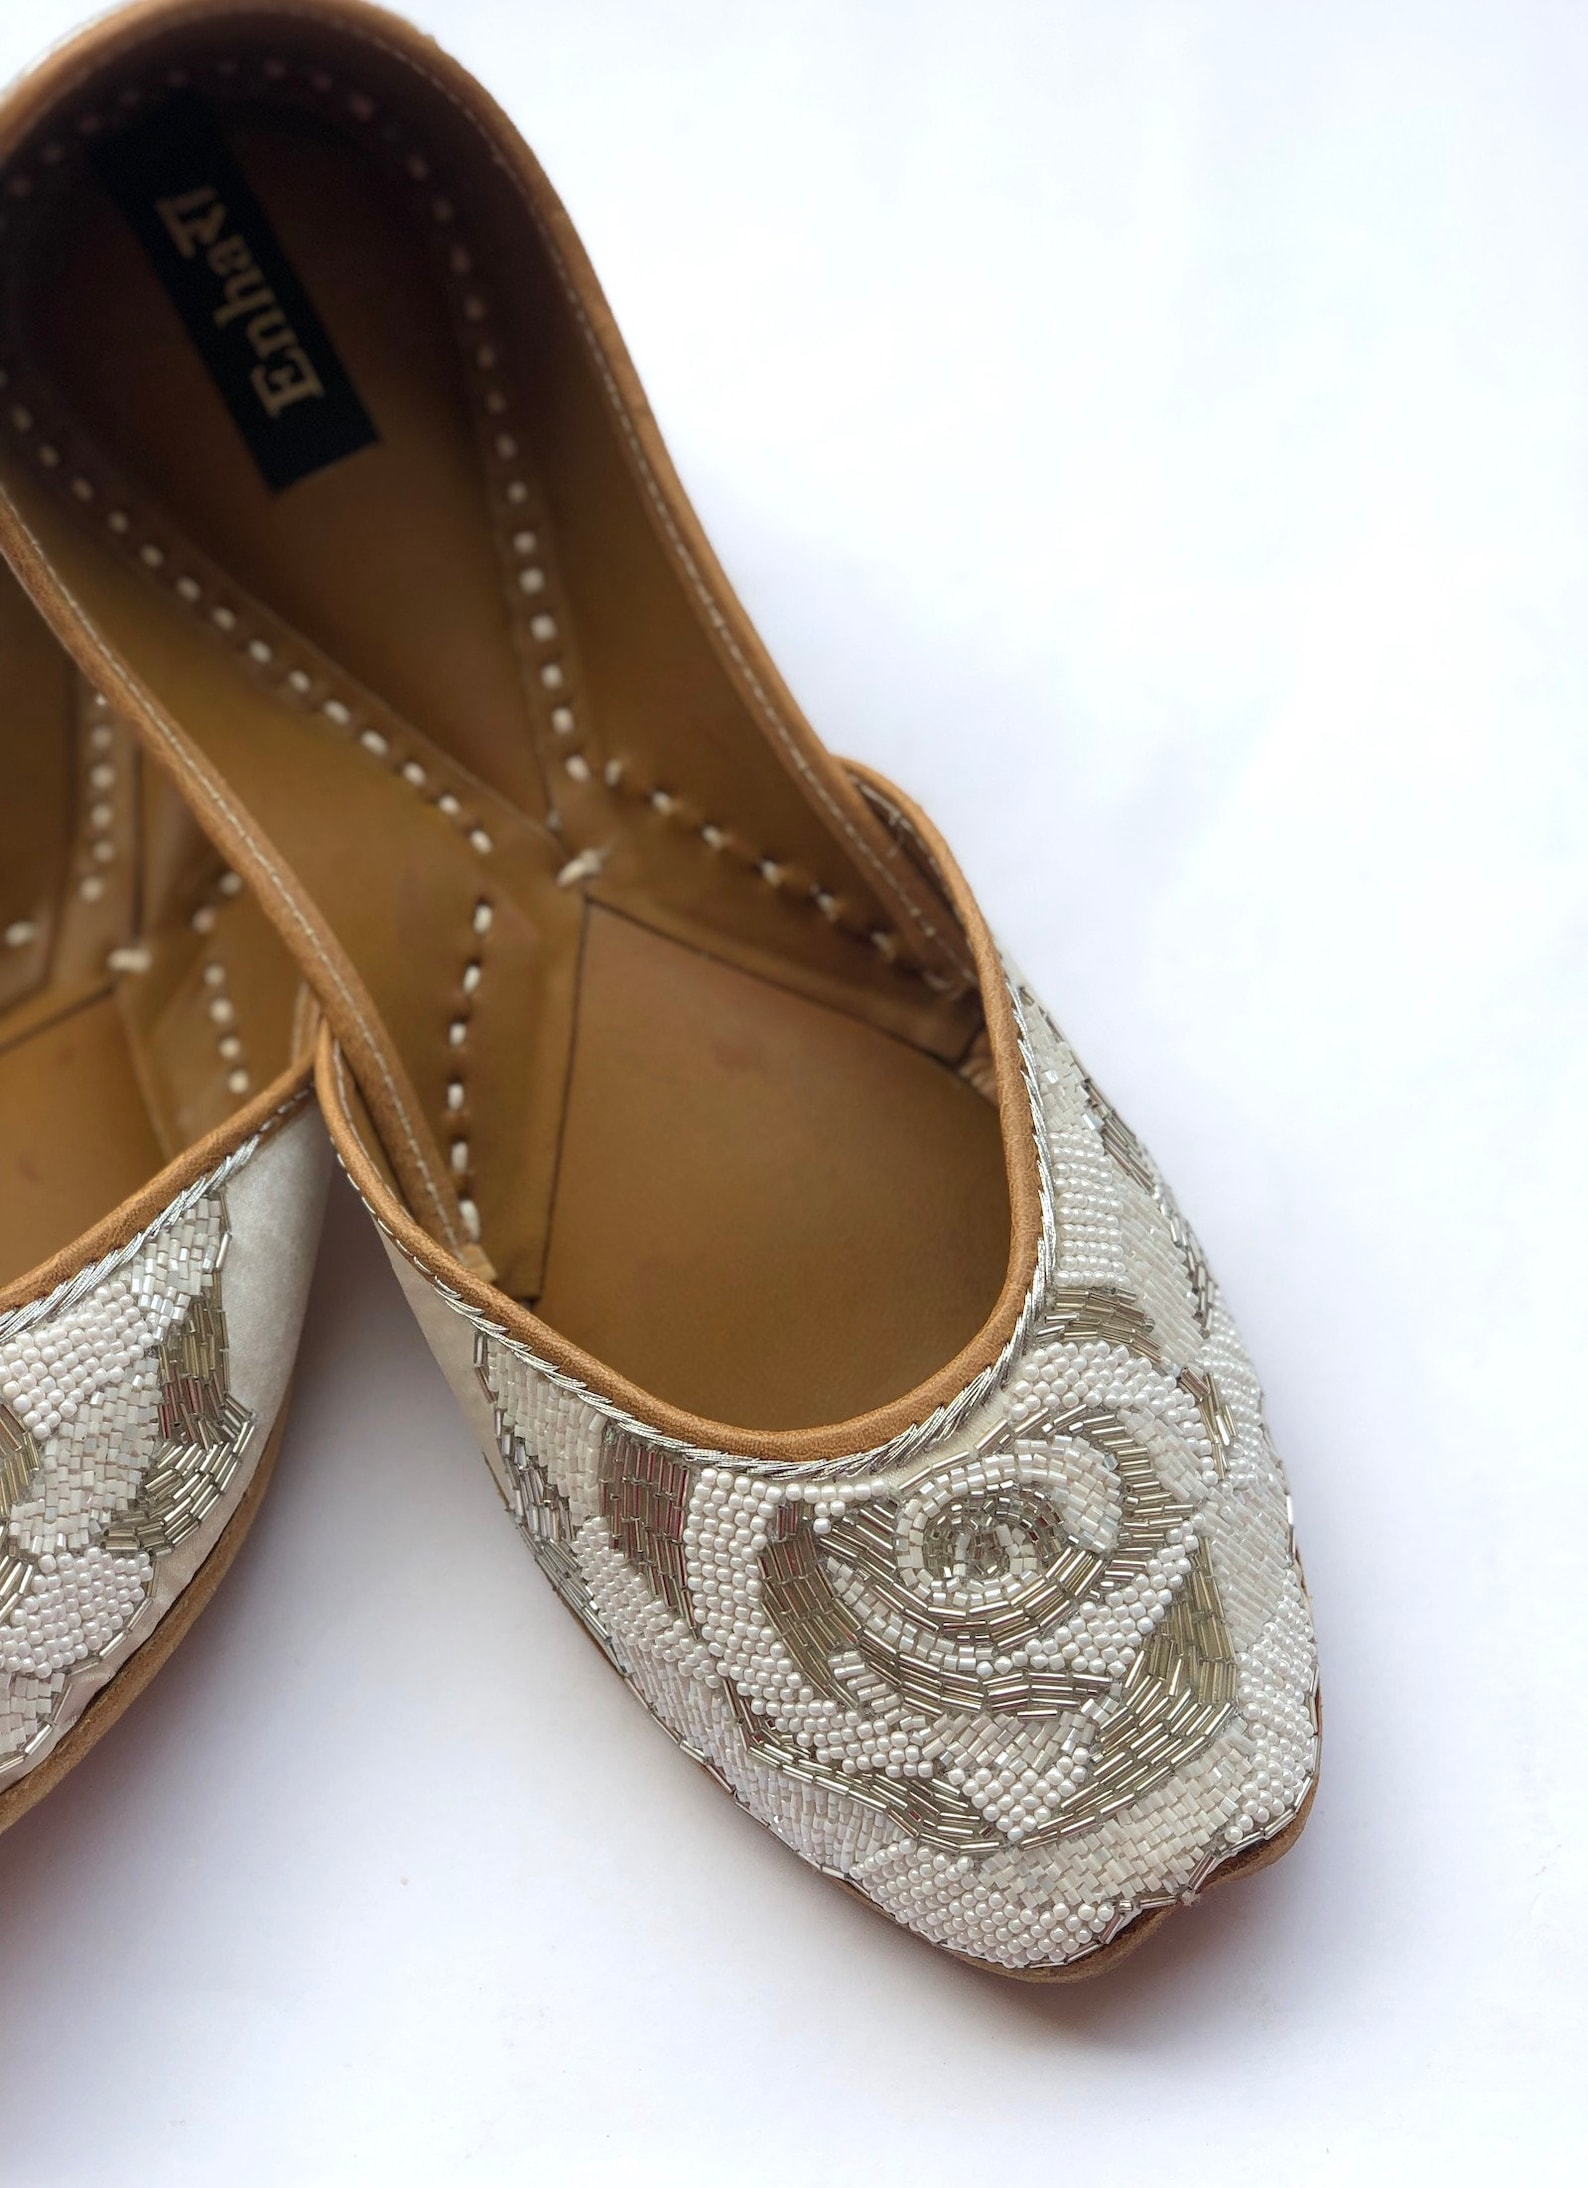 the ethereal rose - white/silver wedding shoes, pearl shoes, bridal shoes, women flat shoes, white bridal ballet flats